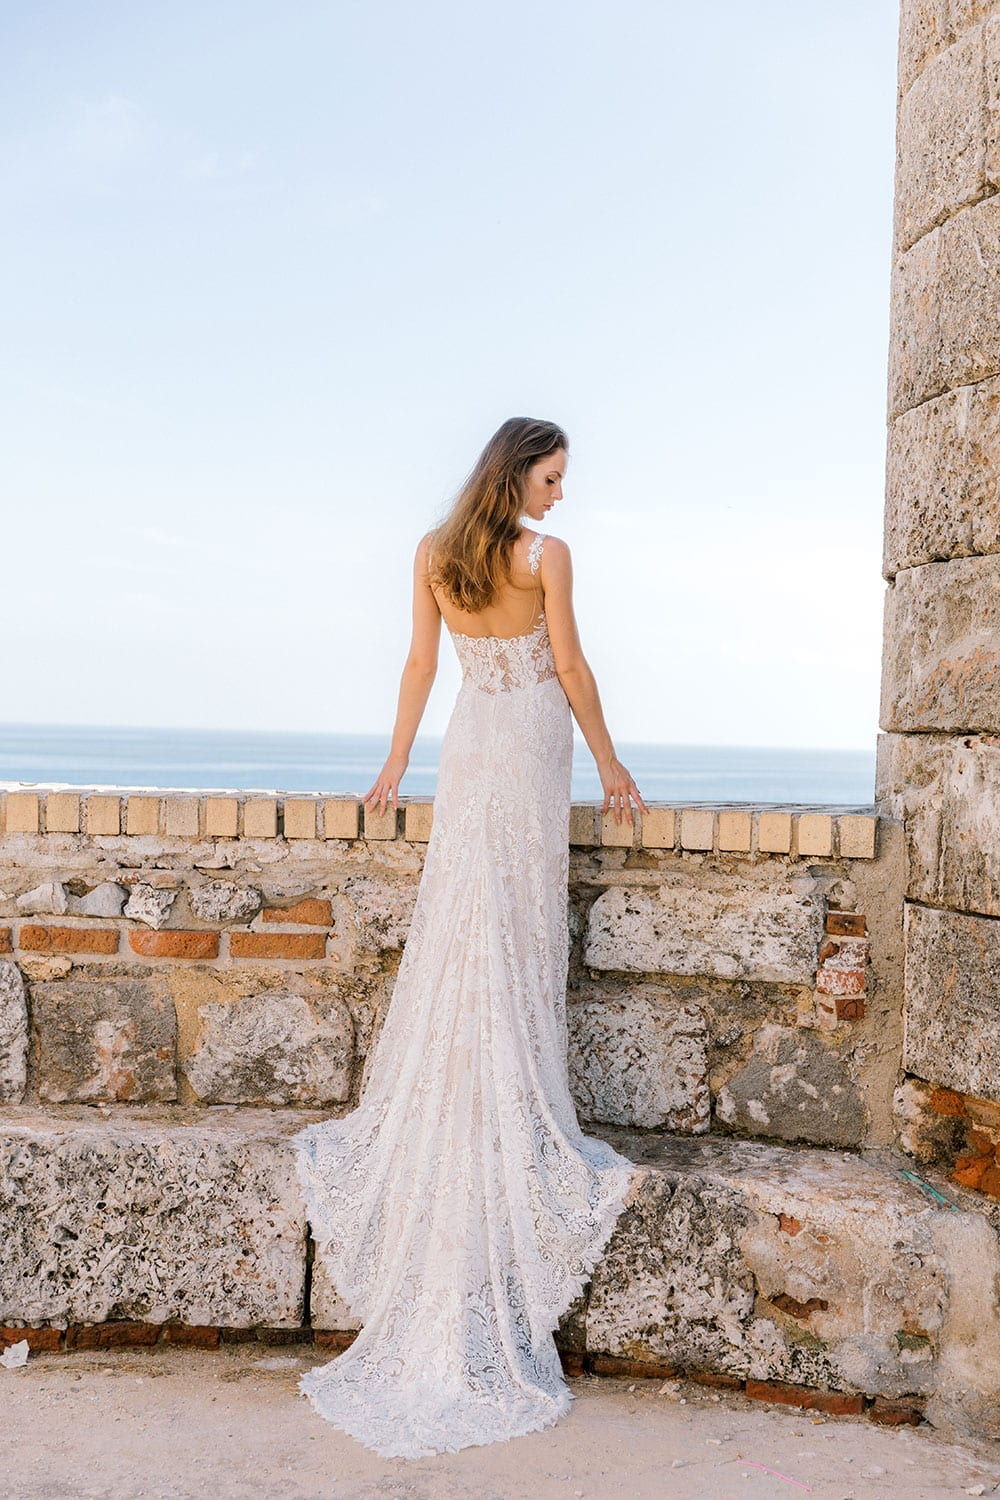 Model wearing Vinka Design Miriam Wedding Dress, a Beaded Lace Wedding Gown looking out across ocean in Cuba